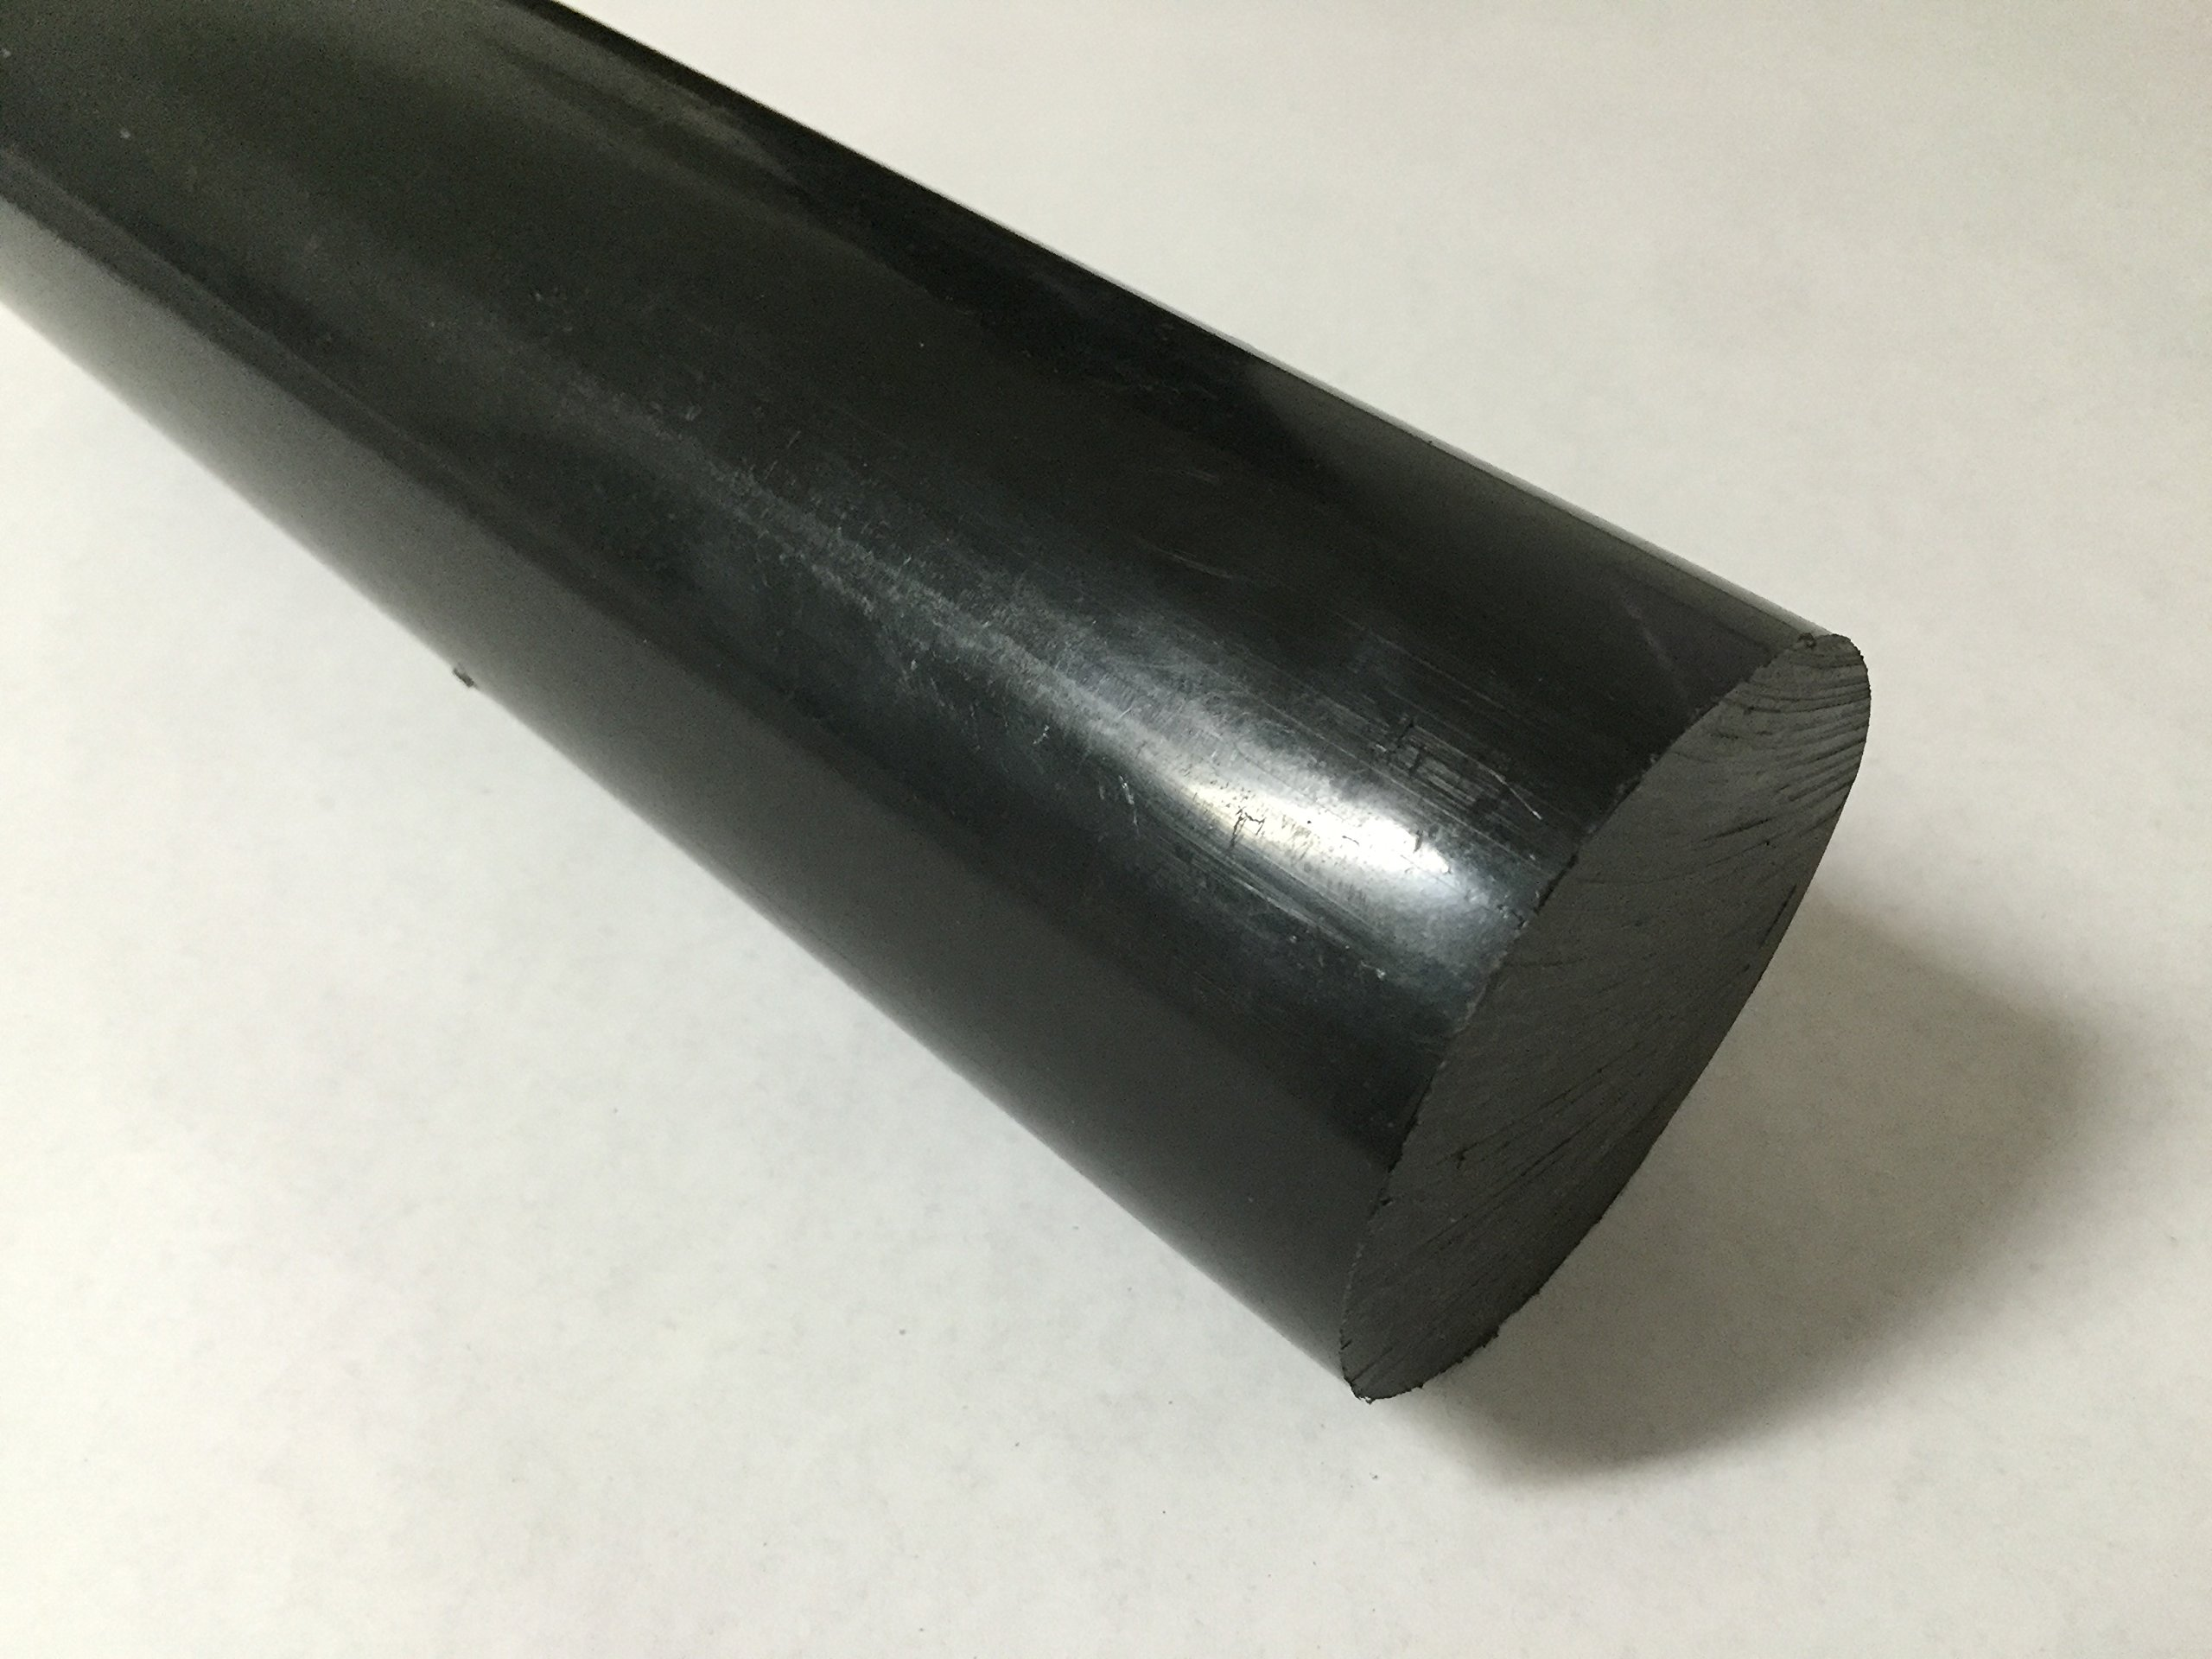 Acetal Copolymer Plastic Round Rod 2.5'' Diameter, 12'' Length - Black Color by Polymersan